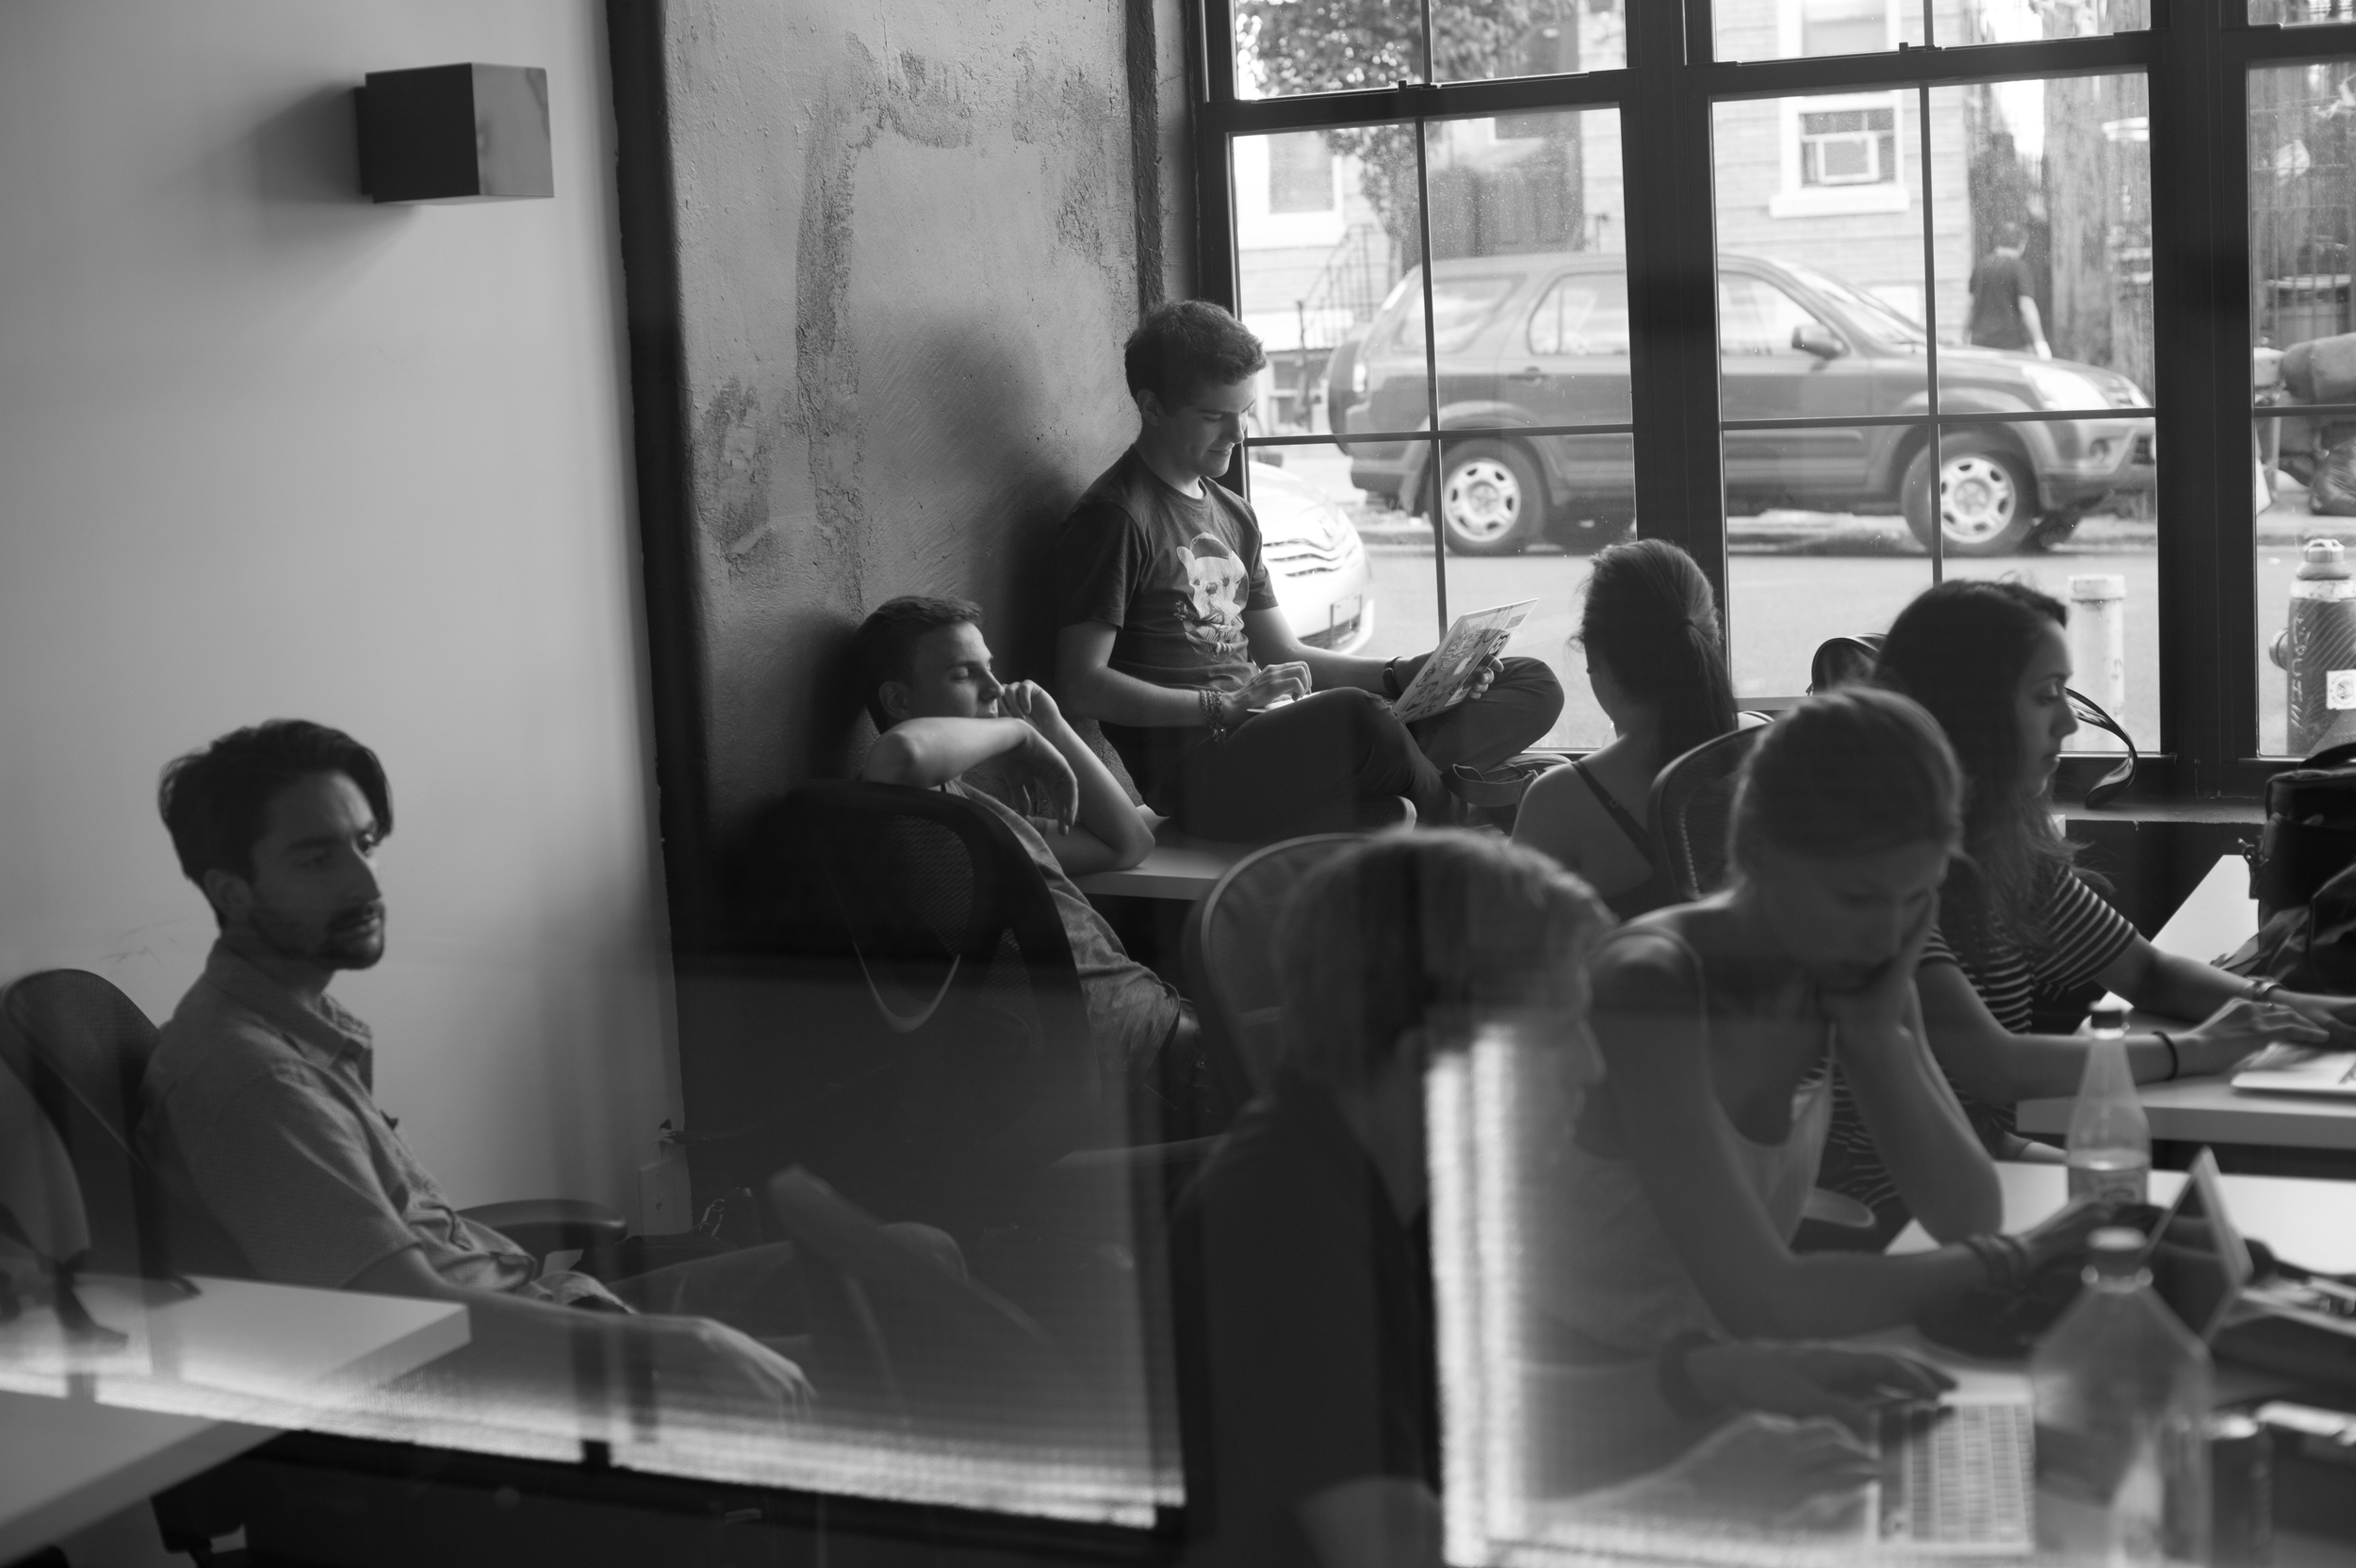 Students developing their photography skills with Michael Kirby Smith at Brooklyn Desks in Bushwick. Photos: Nicolas Enriquez